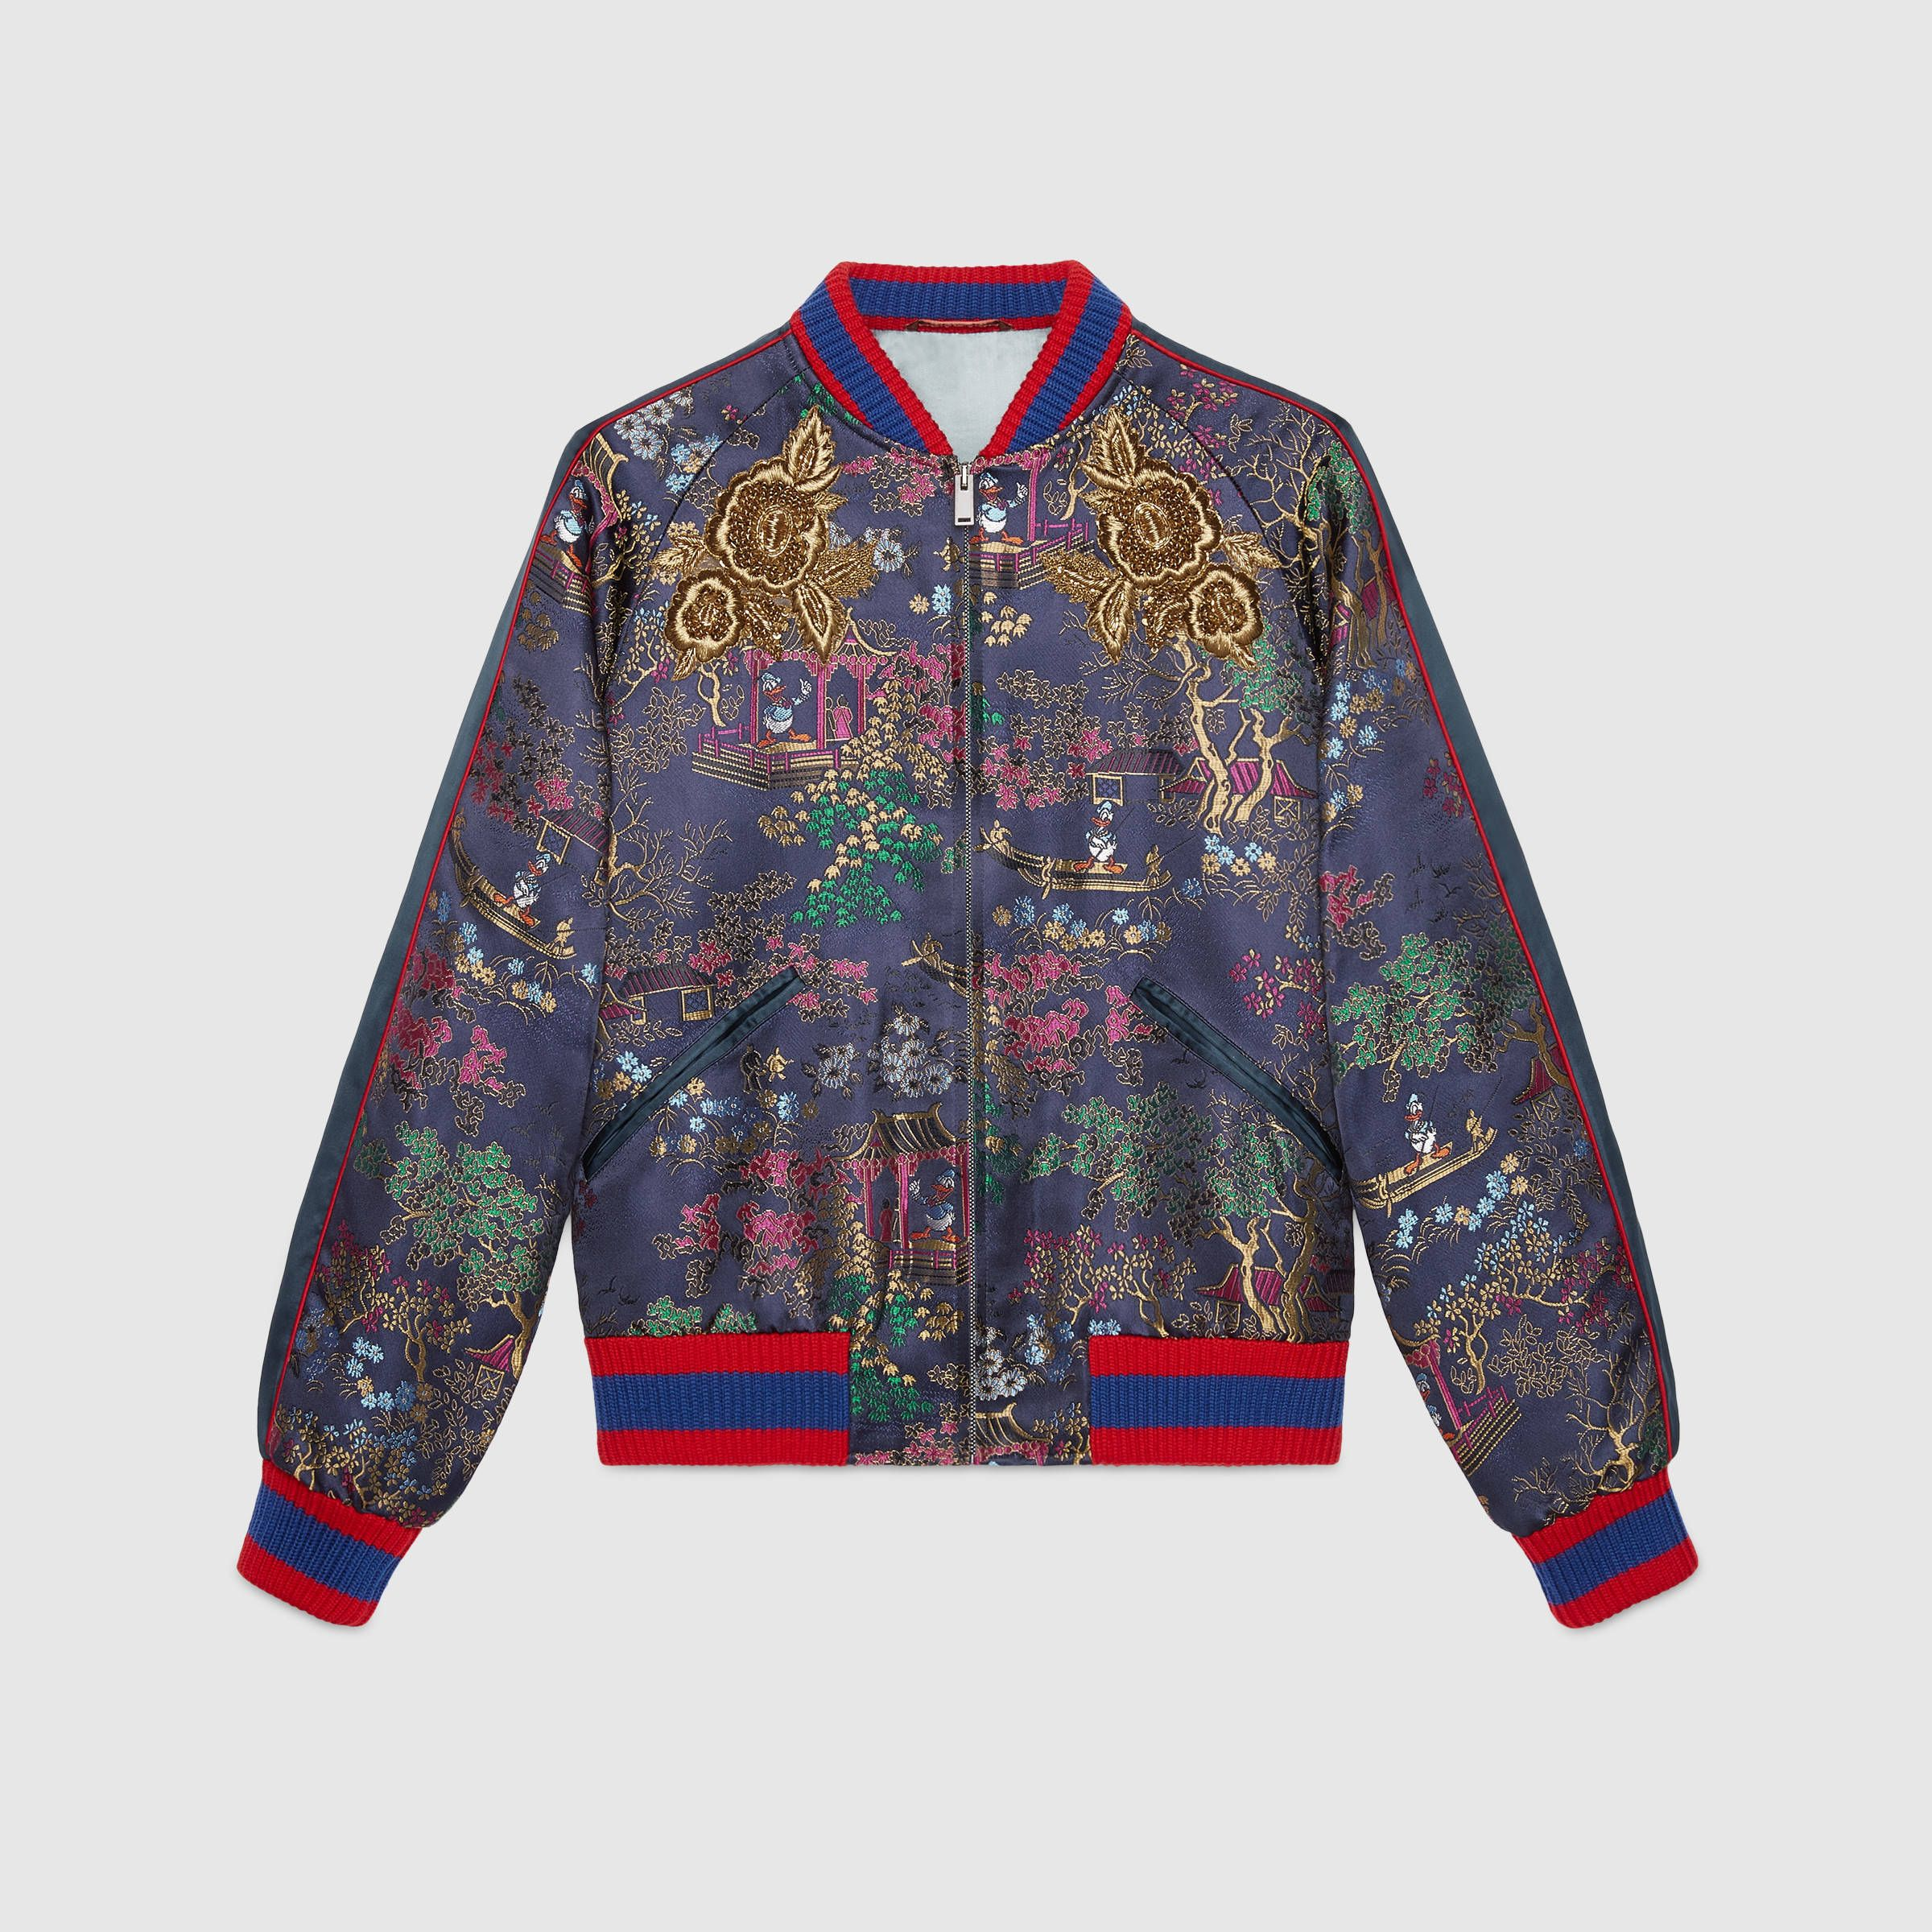 Gucci Jacquard bomber jacket with Donald Duck